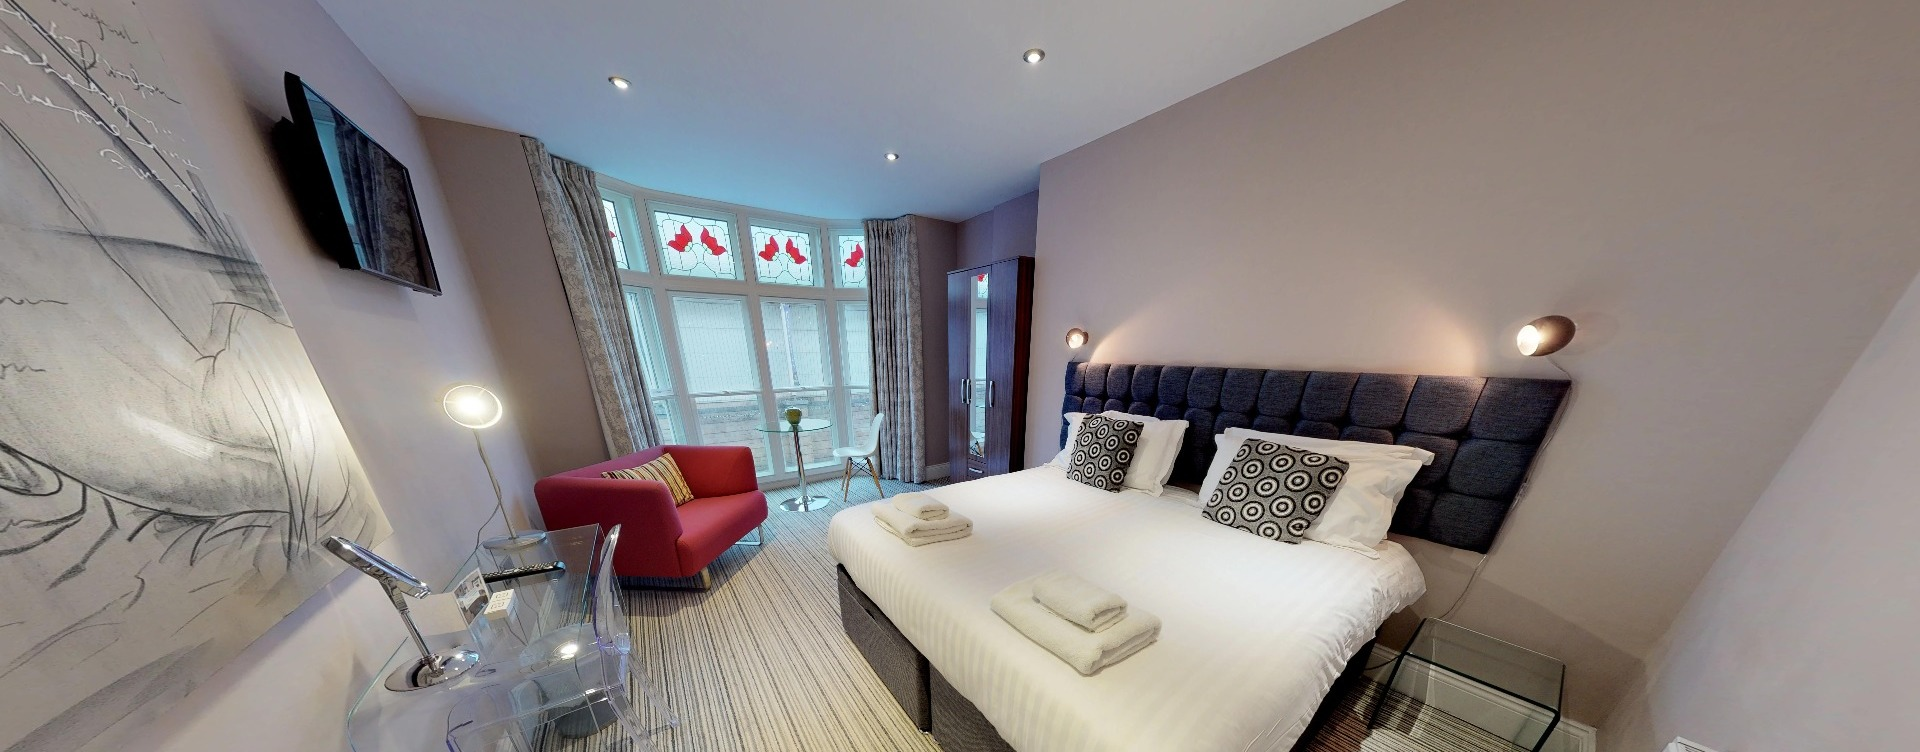 Harrogate Lifestyle offers stylish executive one bedroom one bathroom apartment for 1 or 2 people with double or twin bed set up facility. For Bookings Call now - 01423 568820